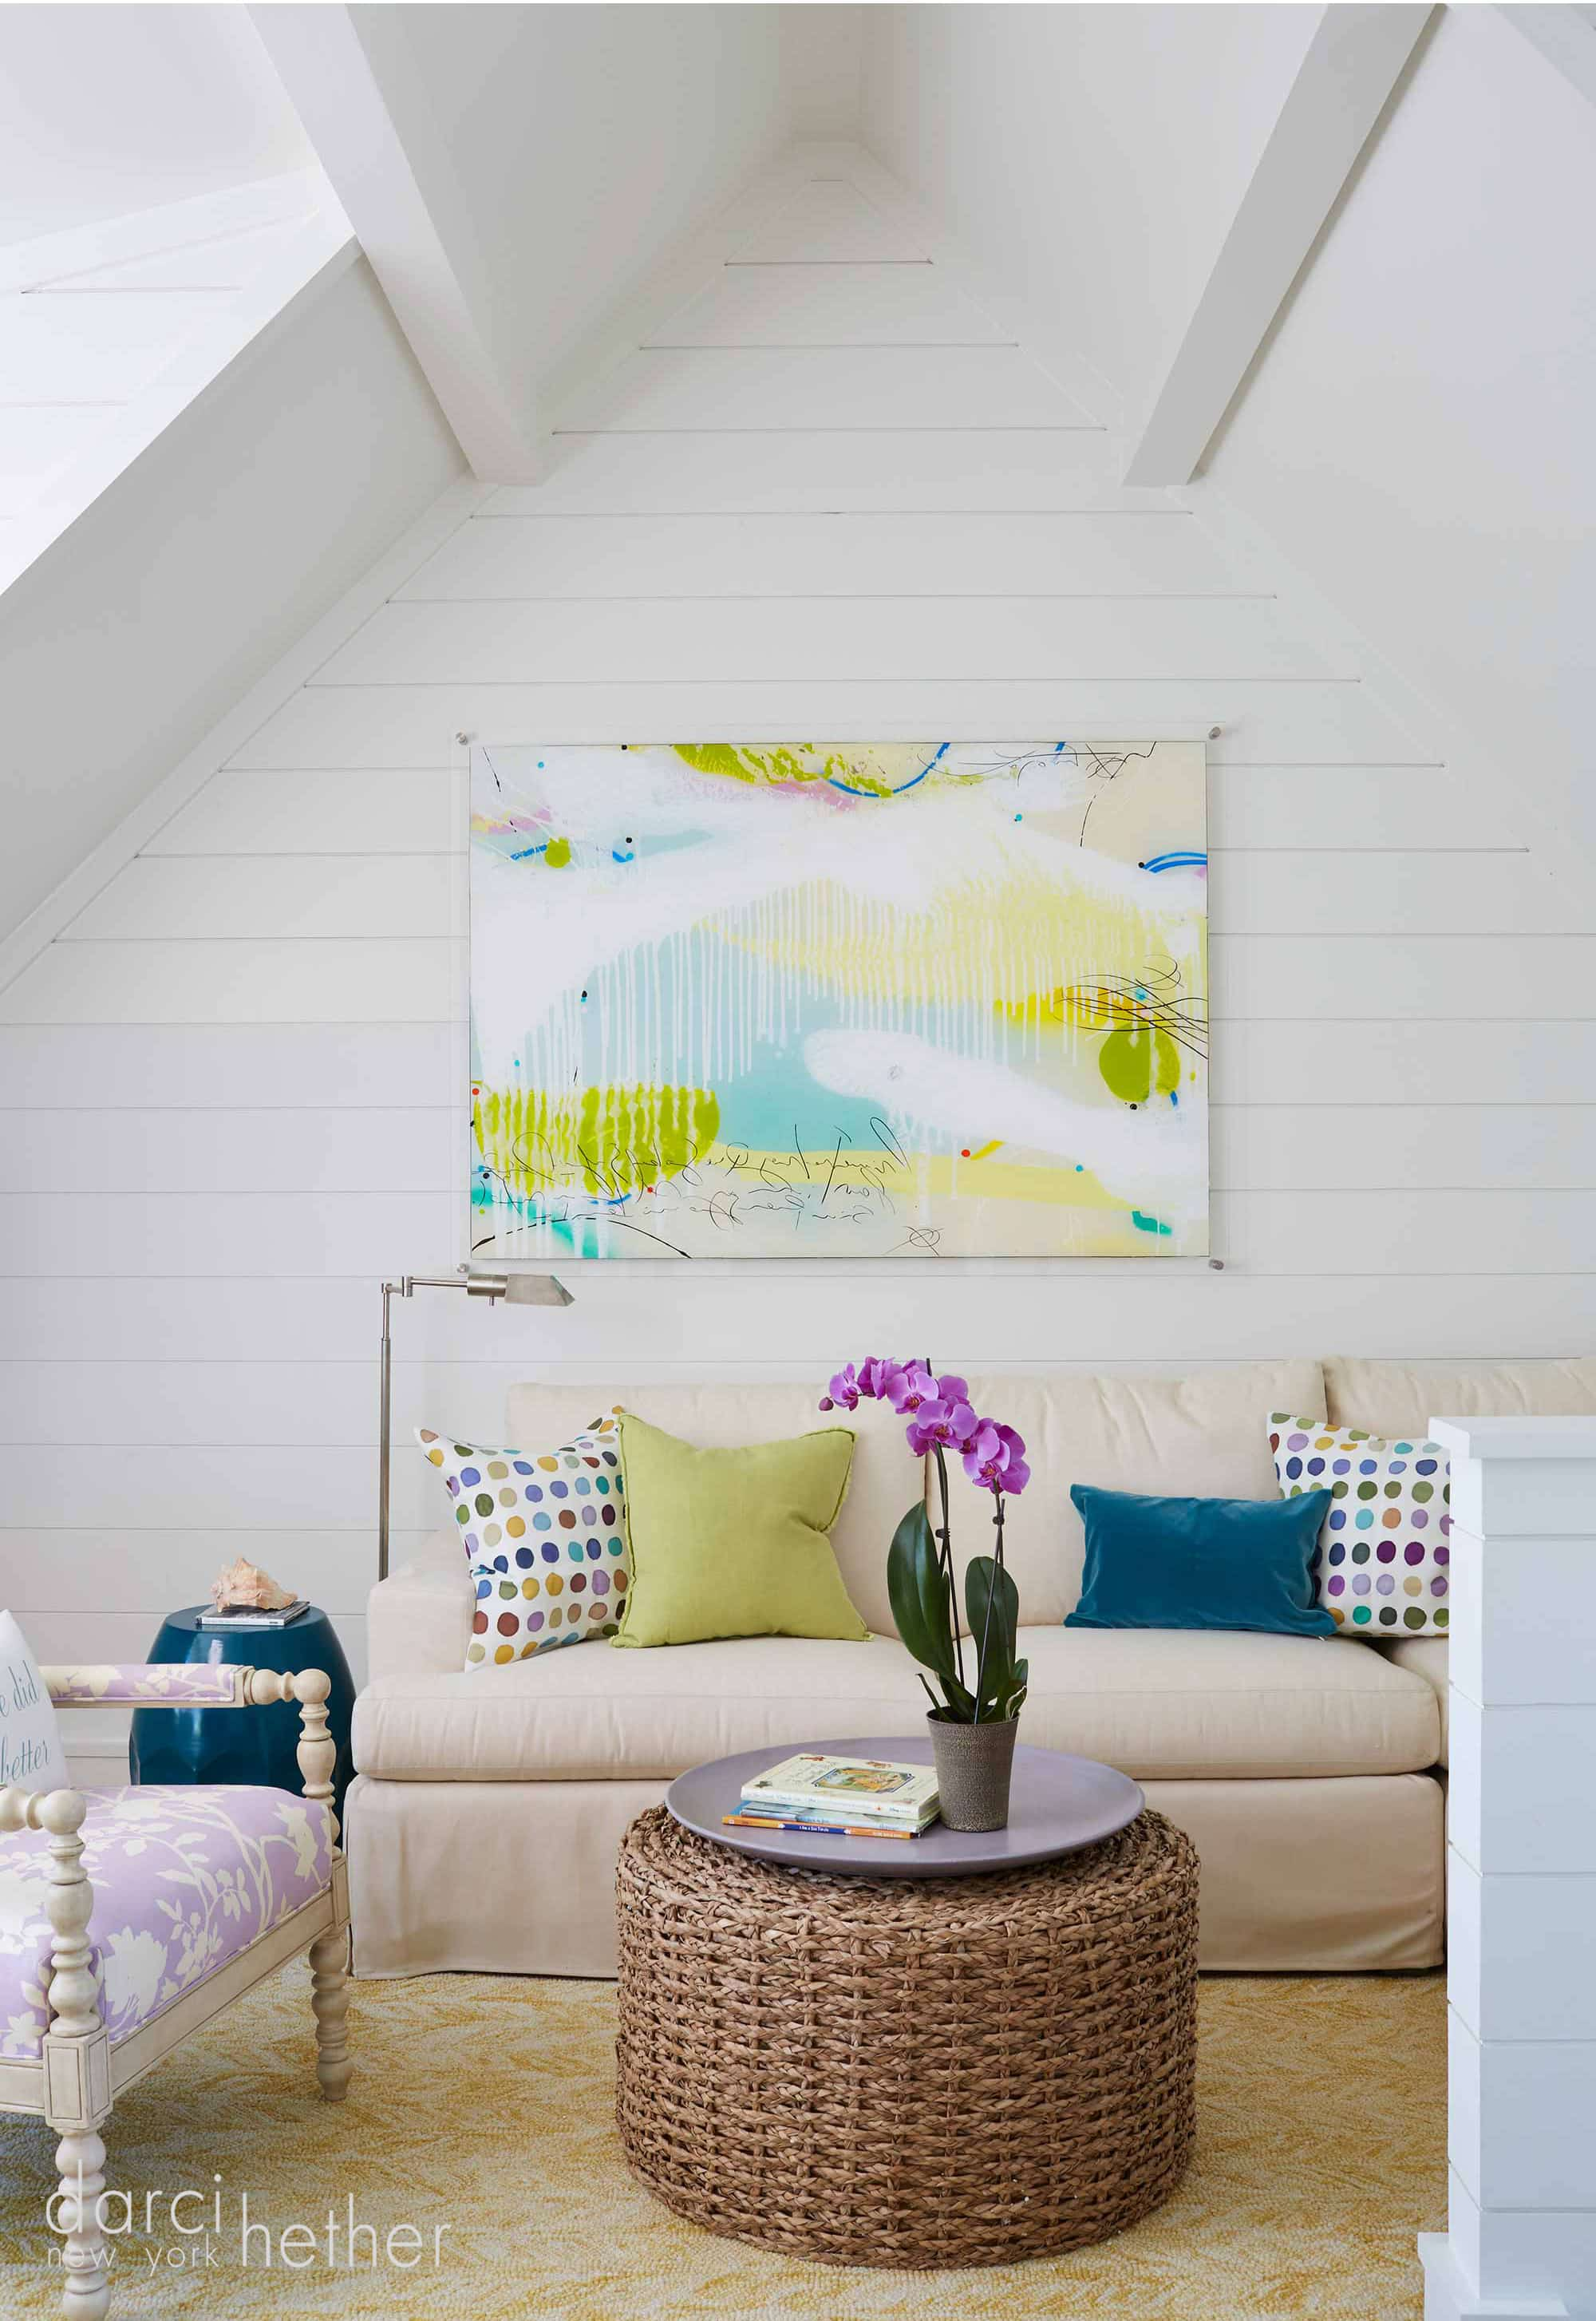 colorful beach house loft living room at 30A florida property designed by darci hether.